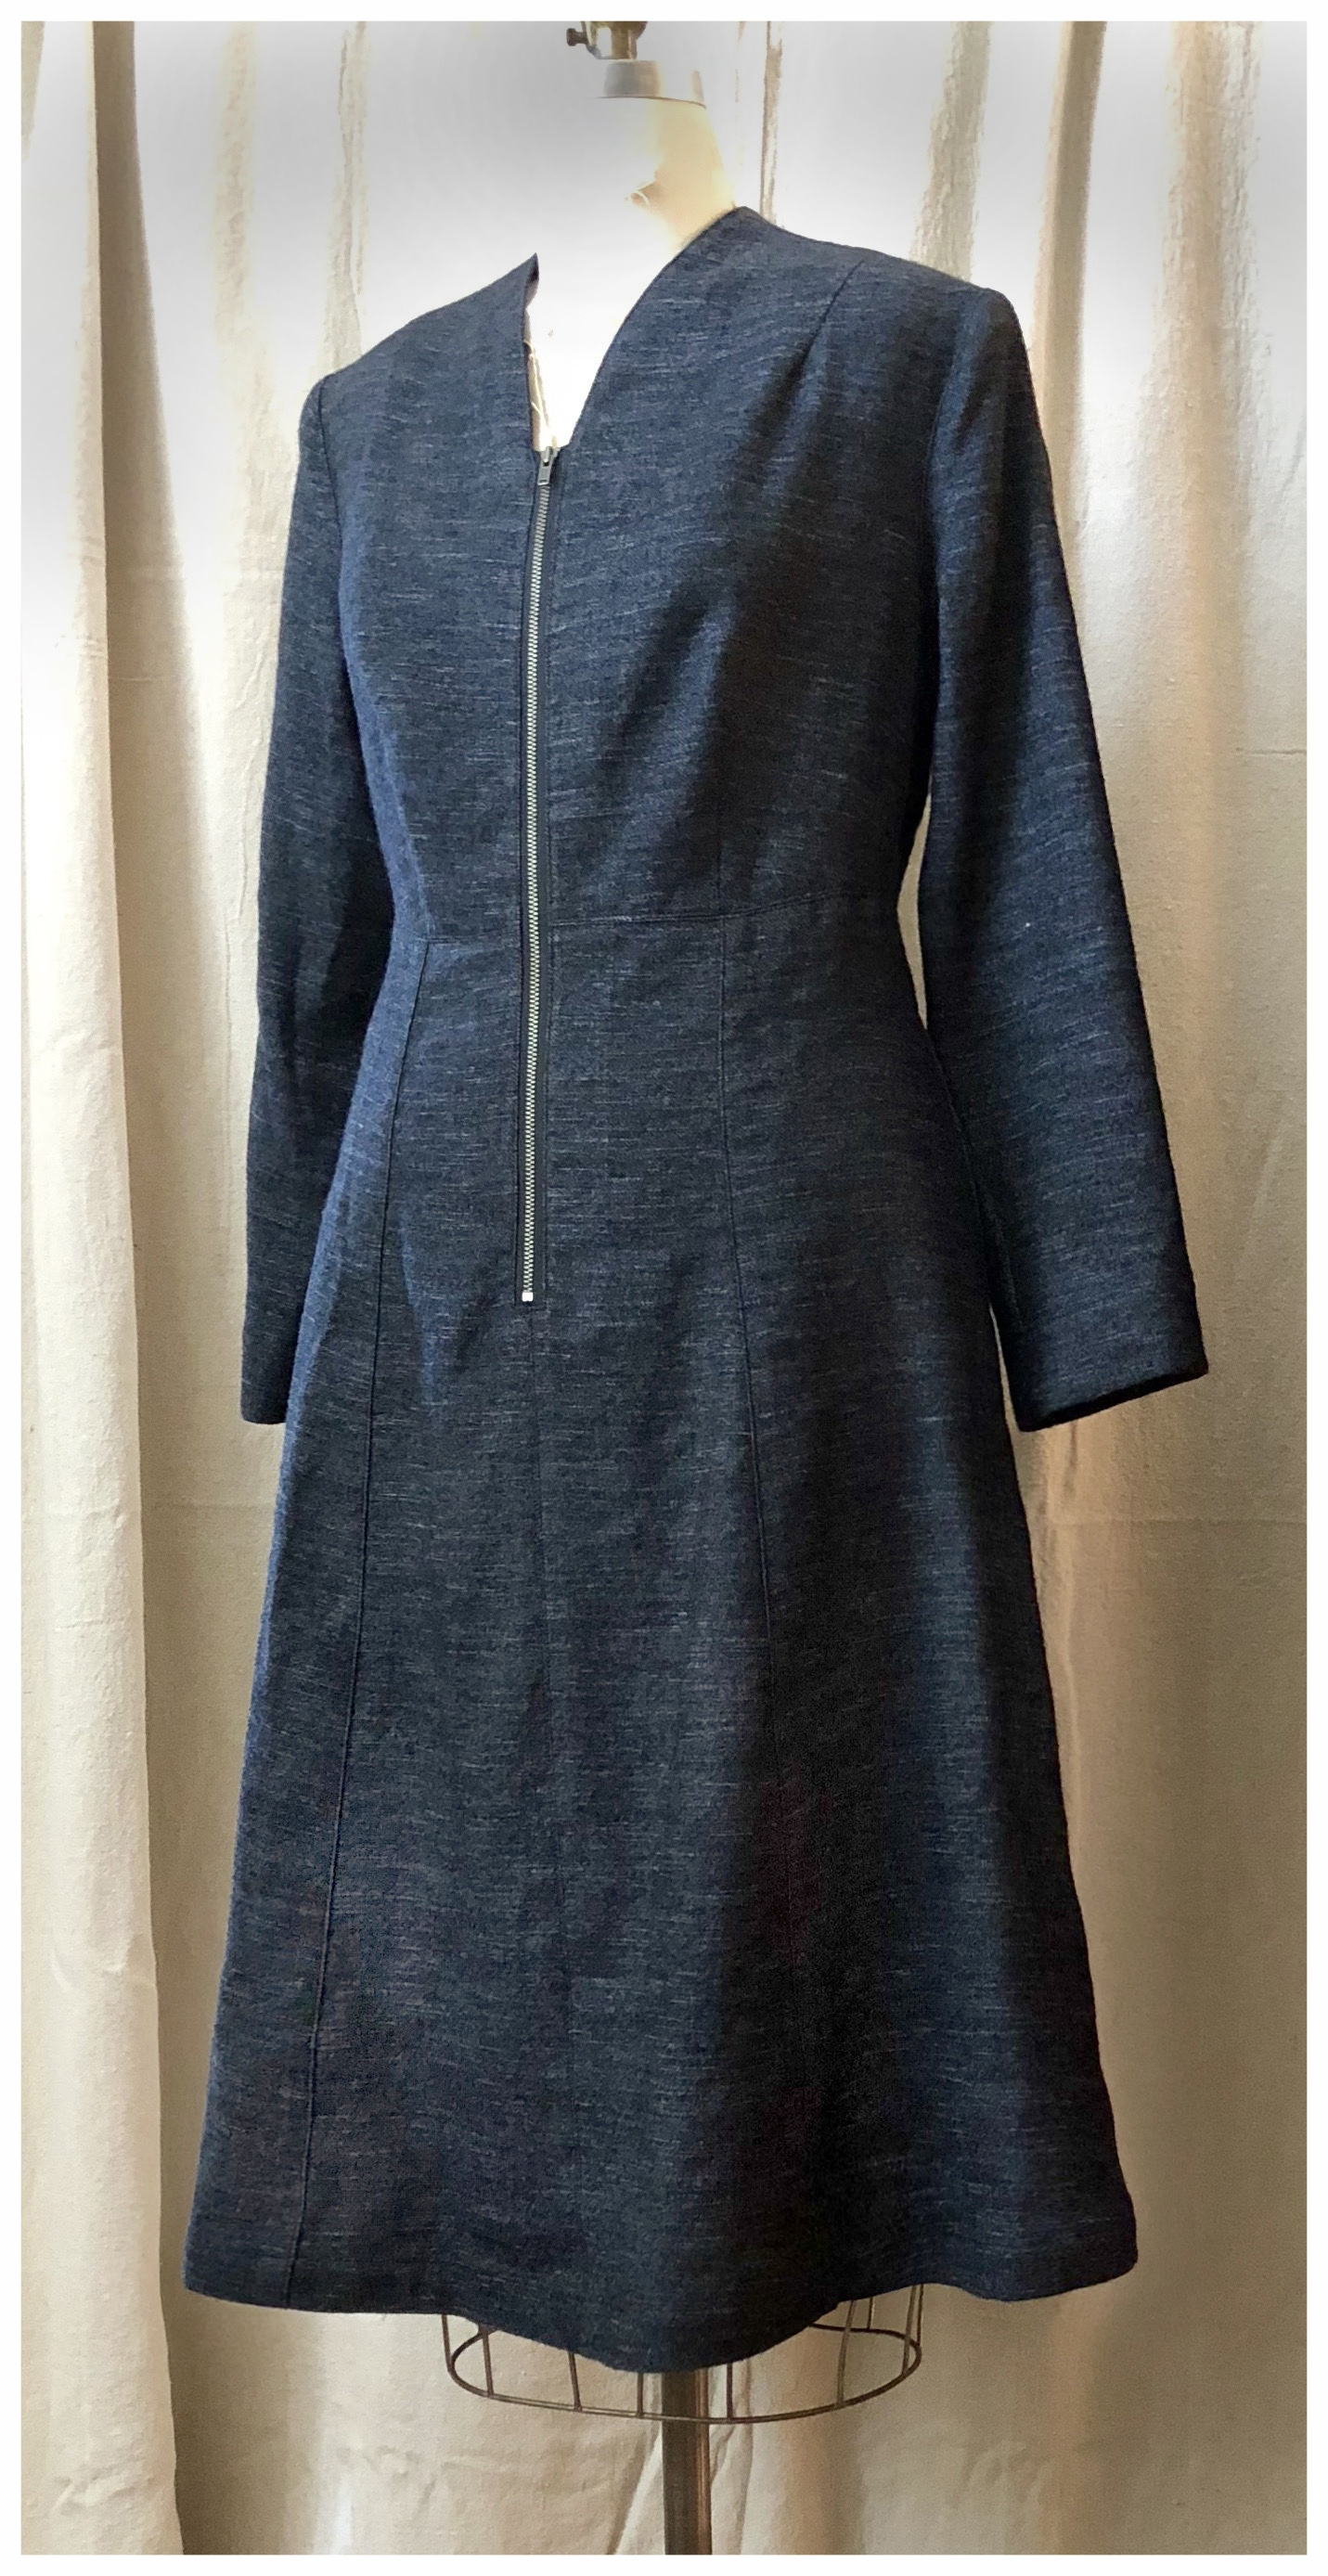 zip dress blue jaspe.jpg